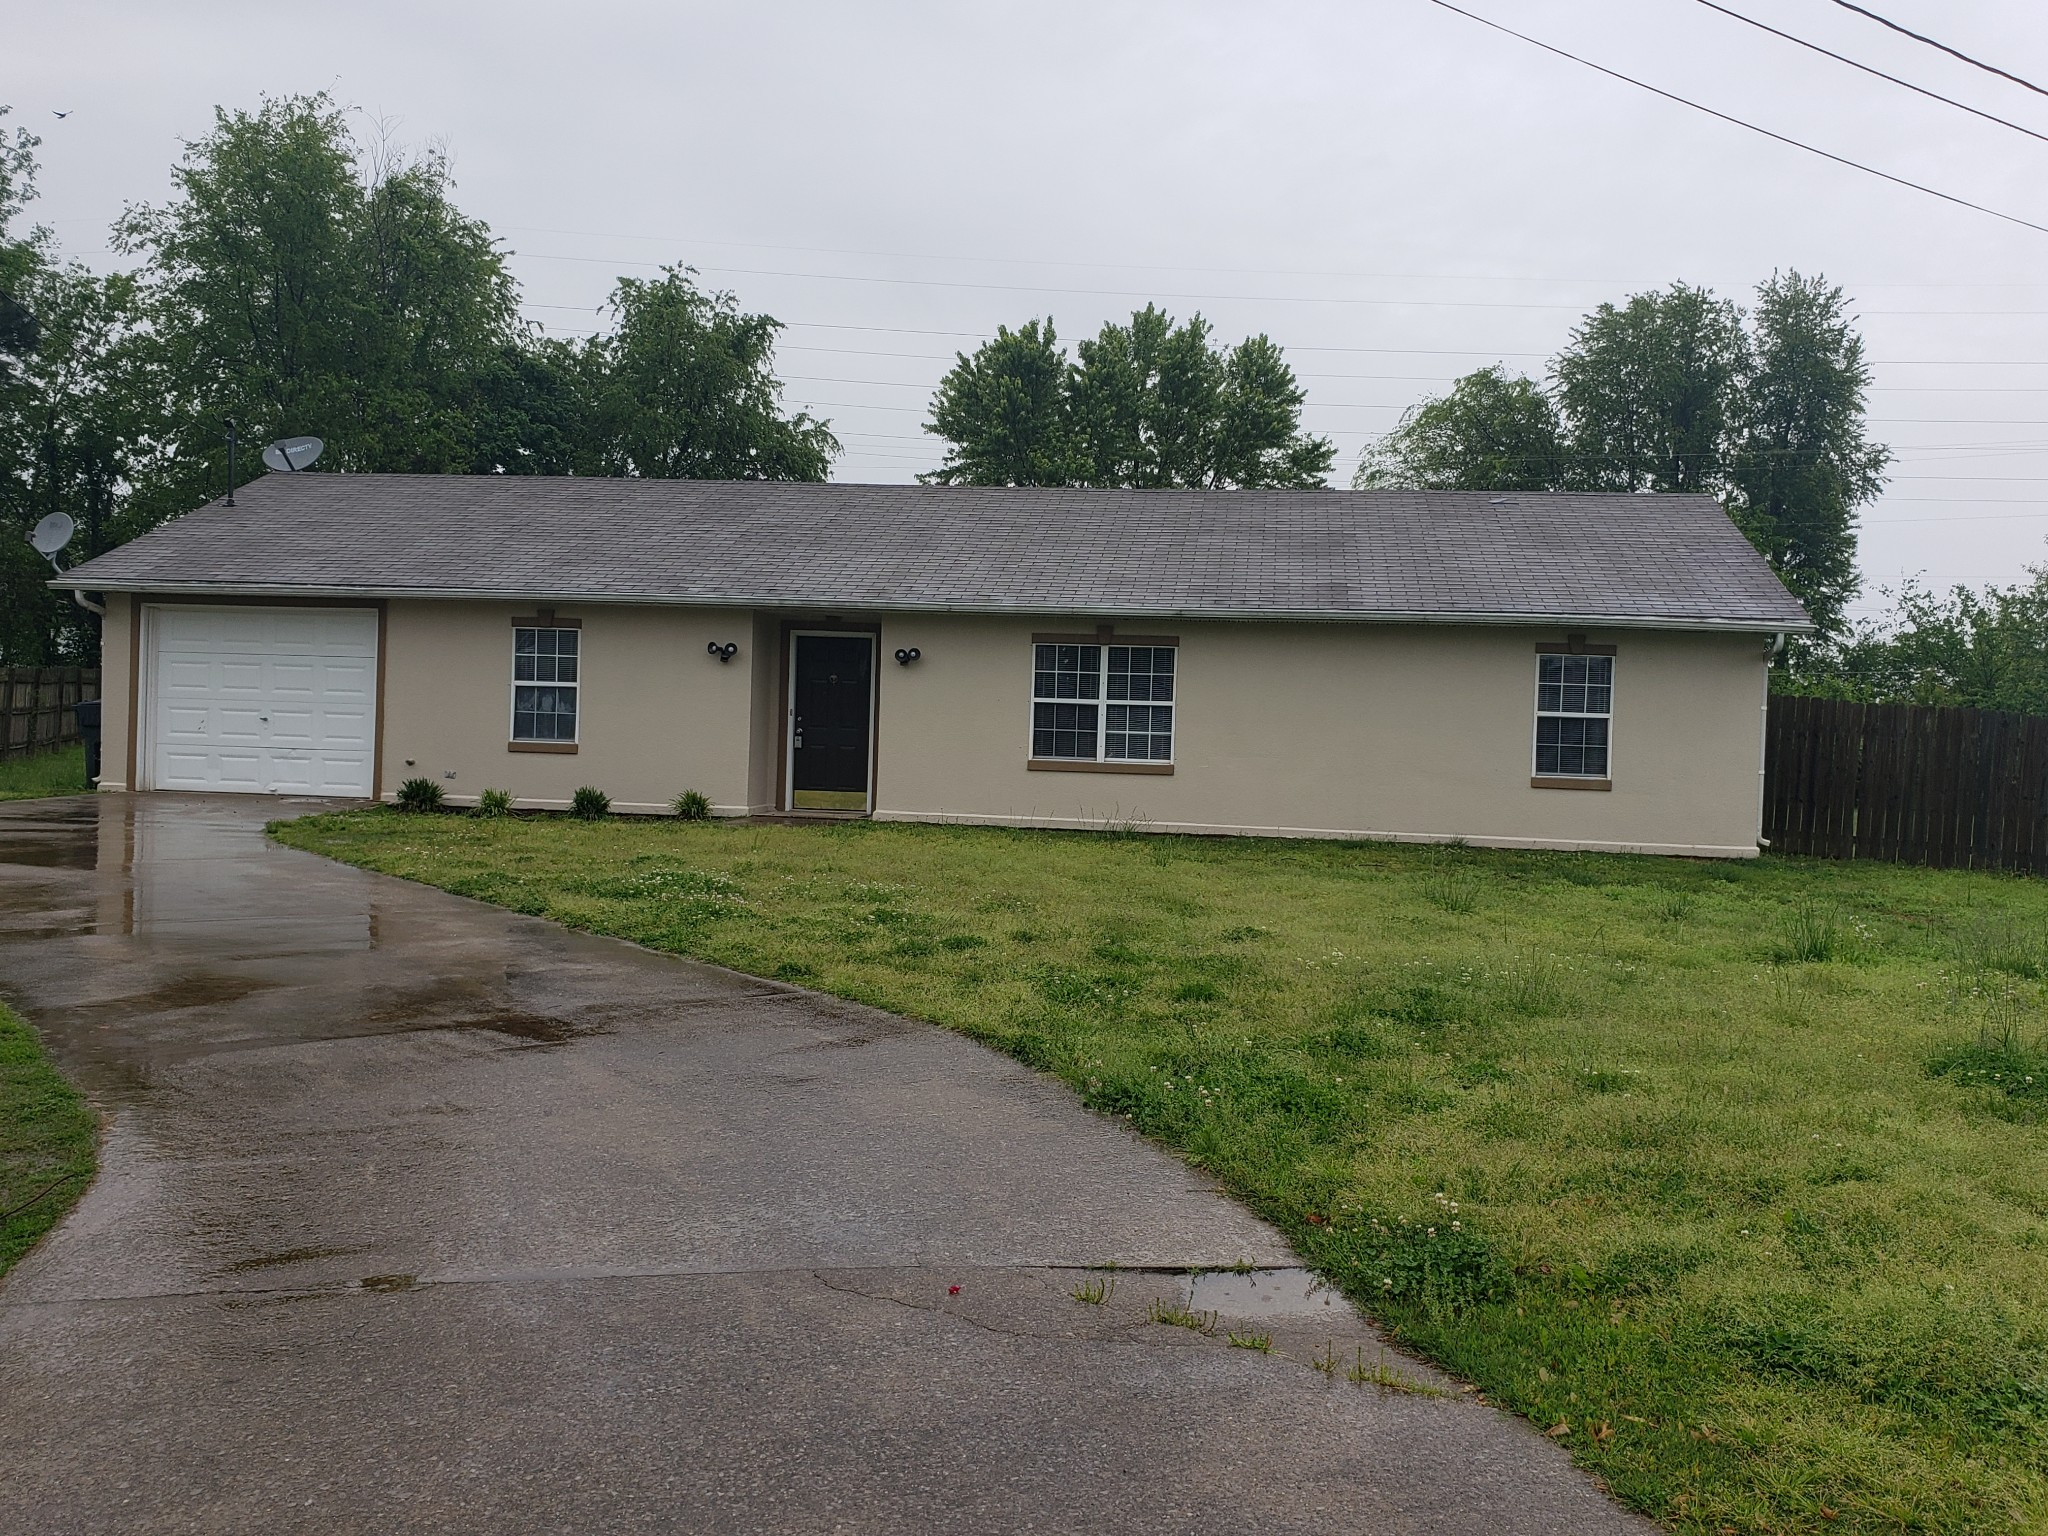 1142 Schatten St, Oak Grove, KY 42262 - Oak Grove, KY real estate listing